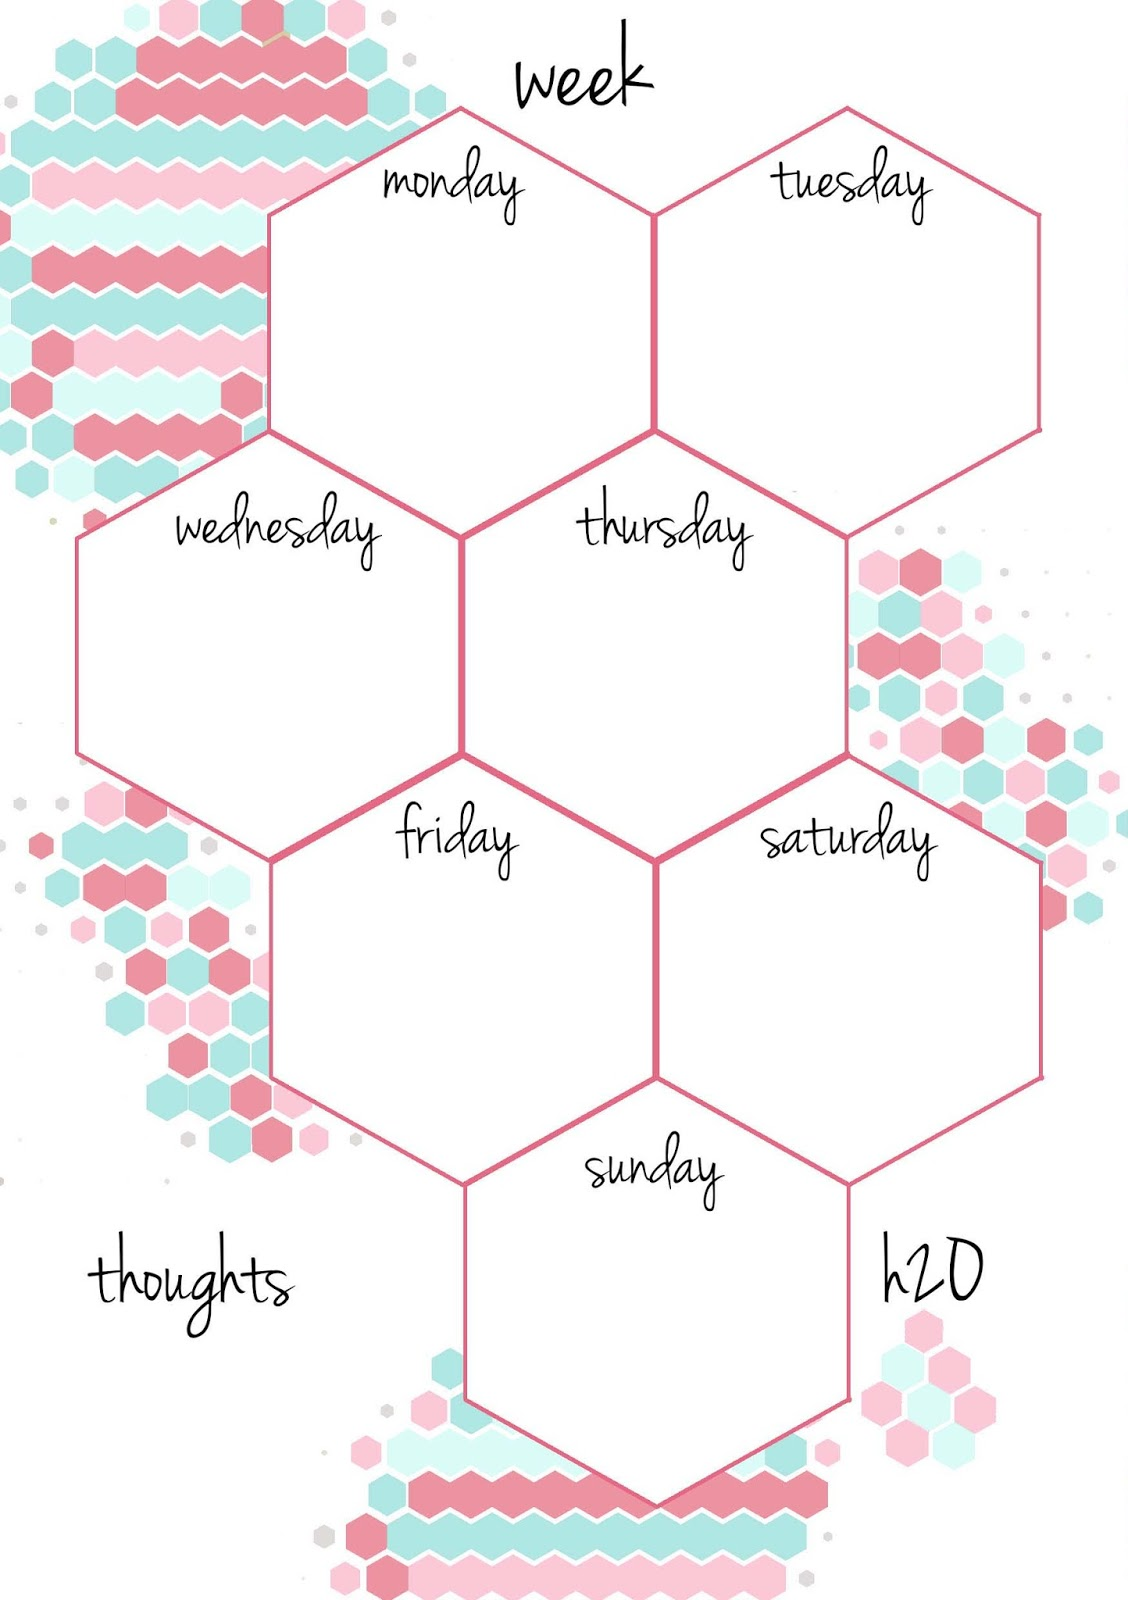 Pb And J Studio Free Printable Planner Inserts Candy Hexagon In A5